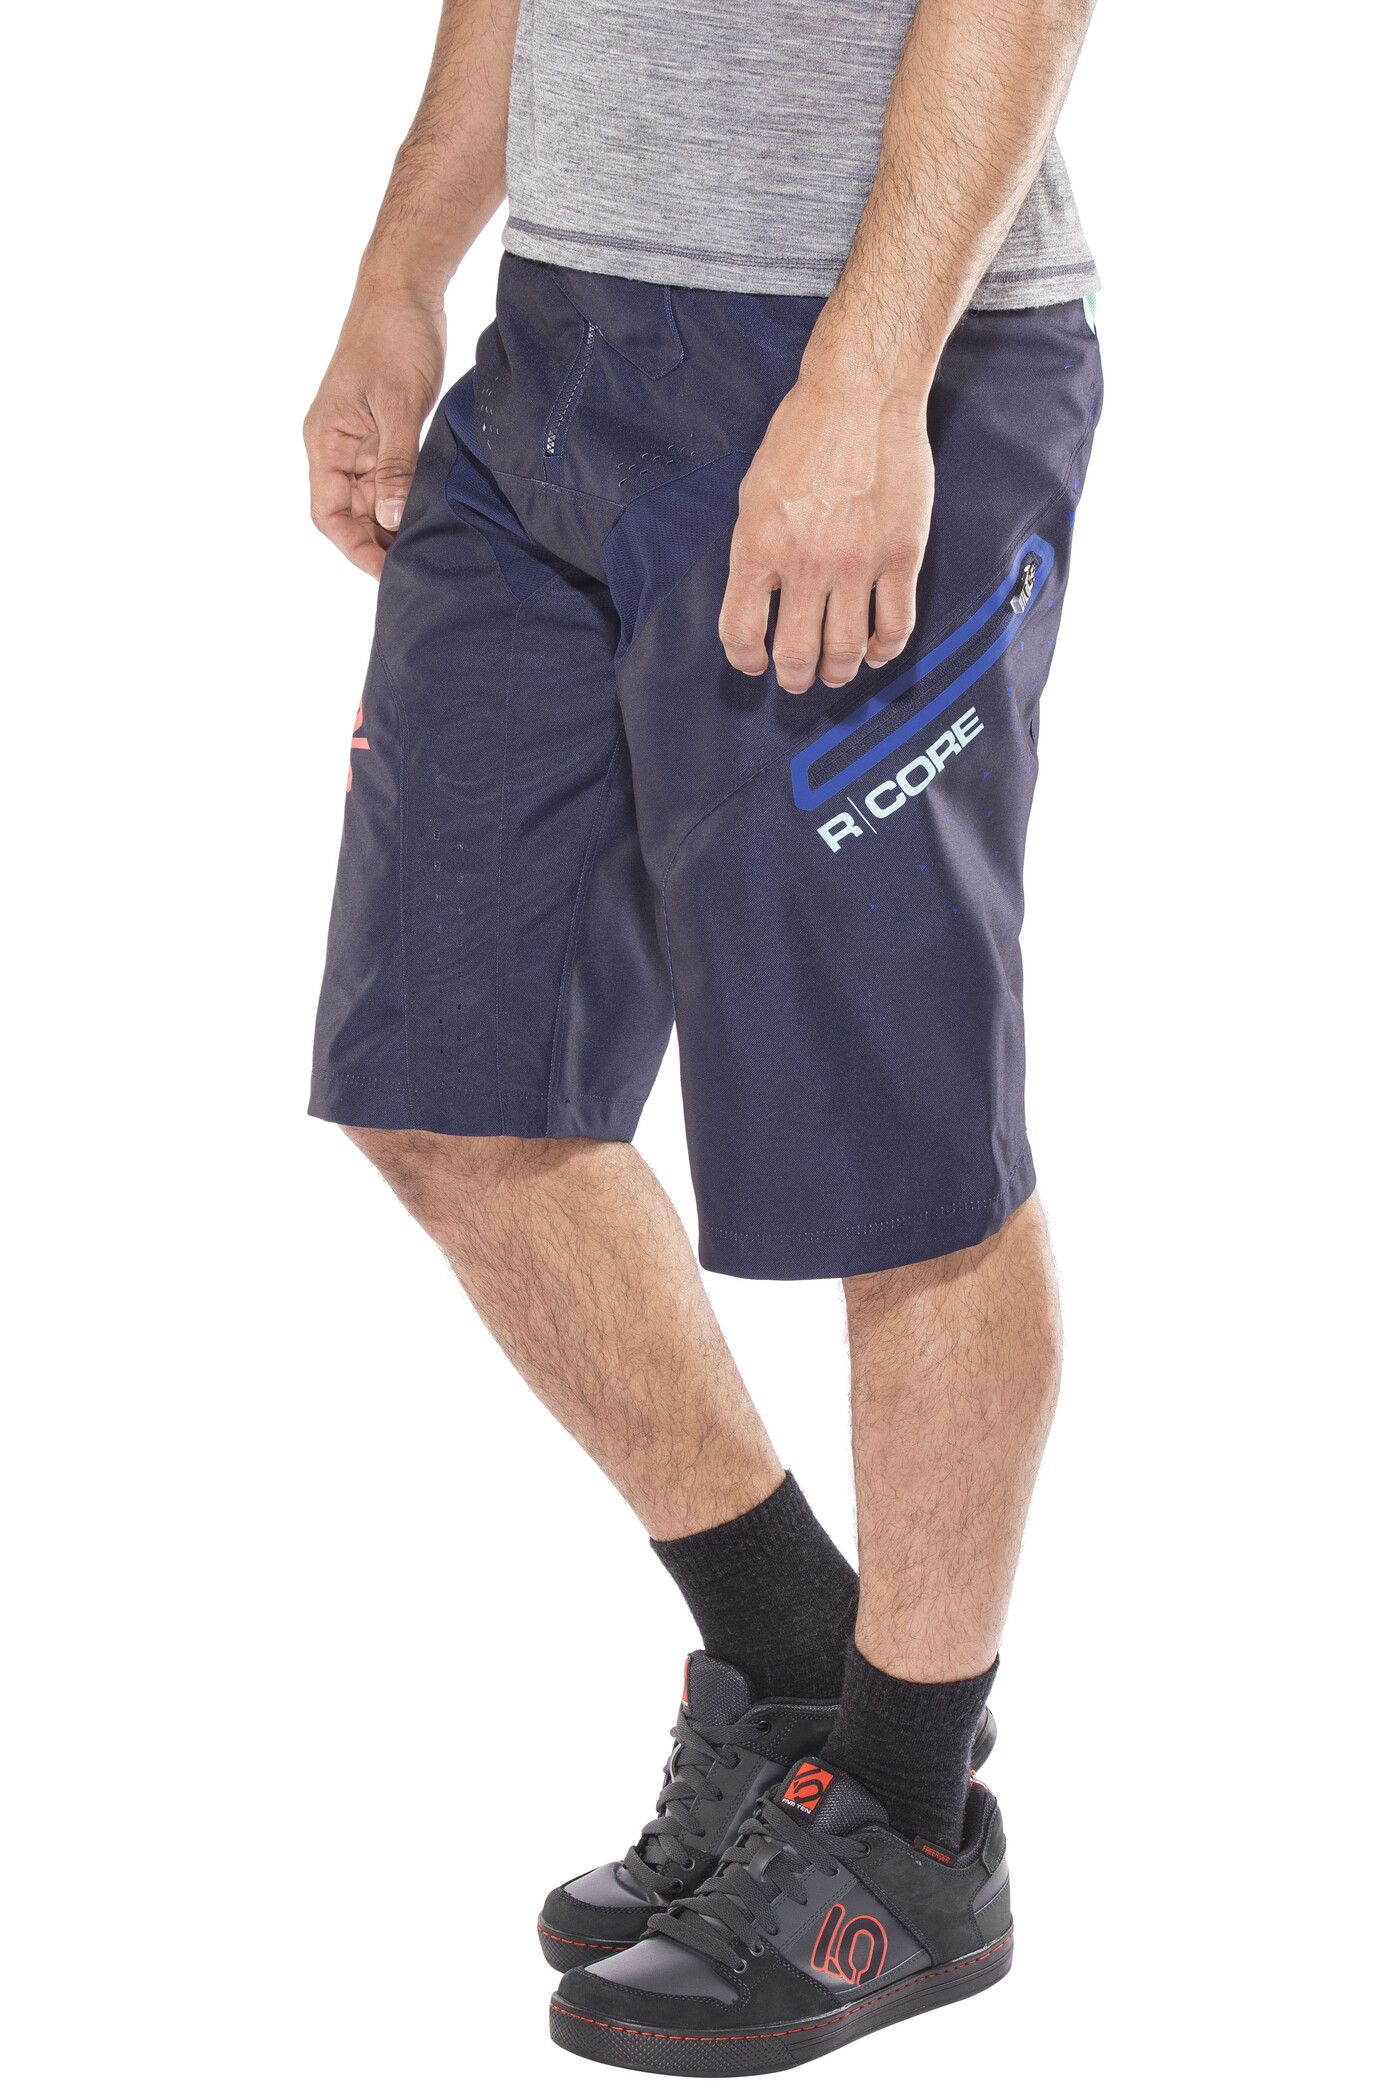 100% R-Core DH Cykelbukser Herrer, navy | Trousers